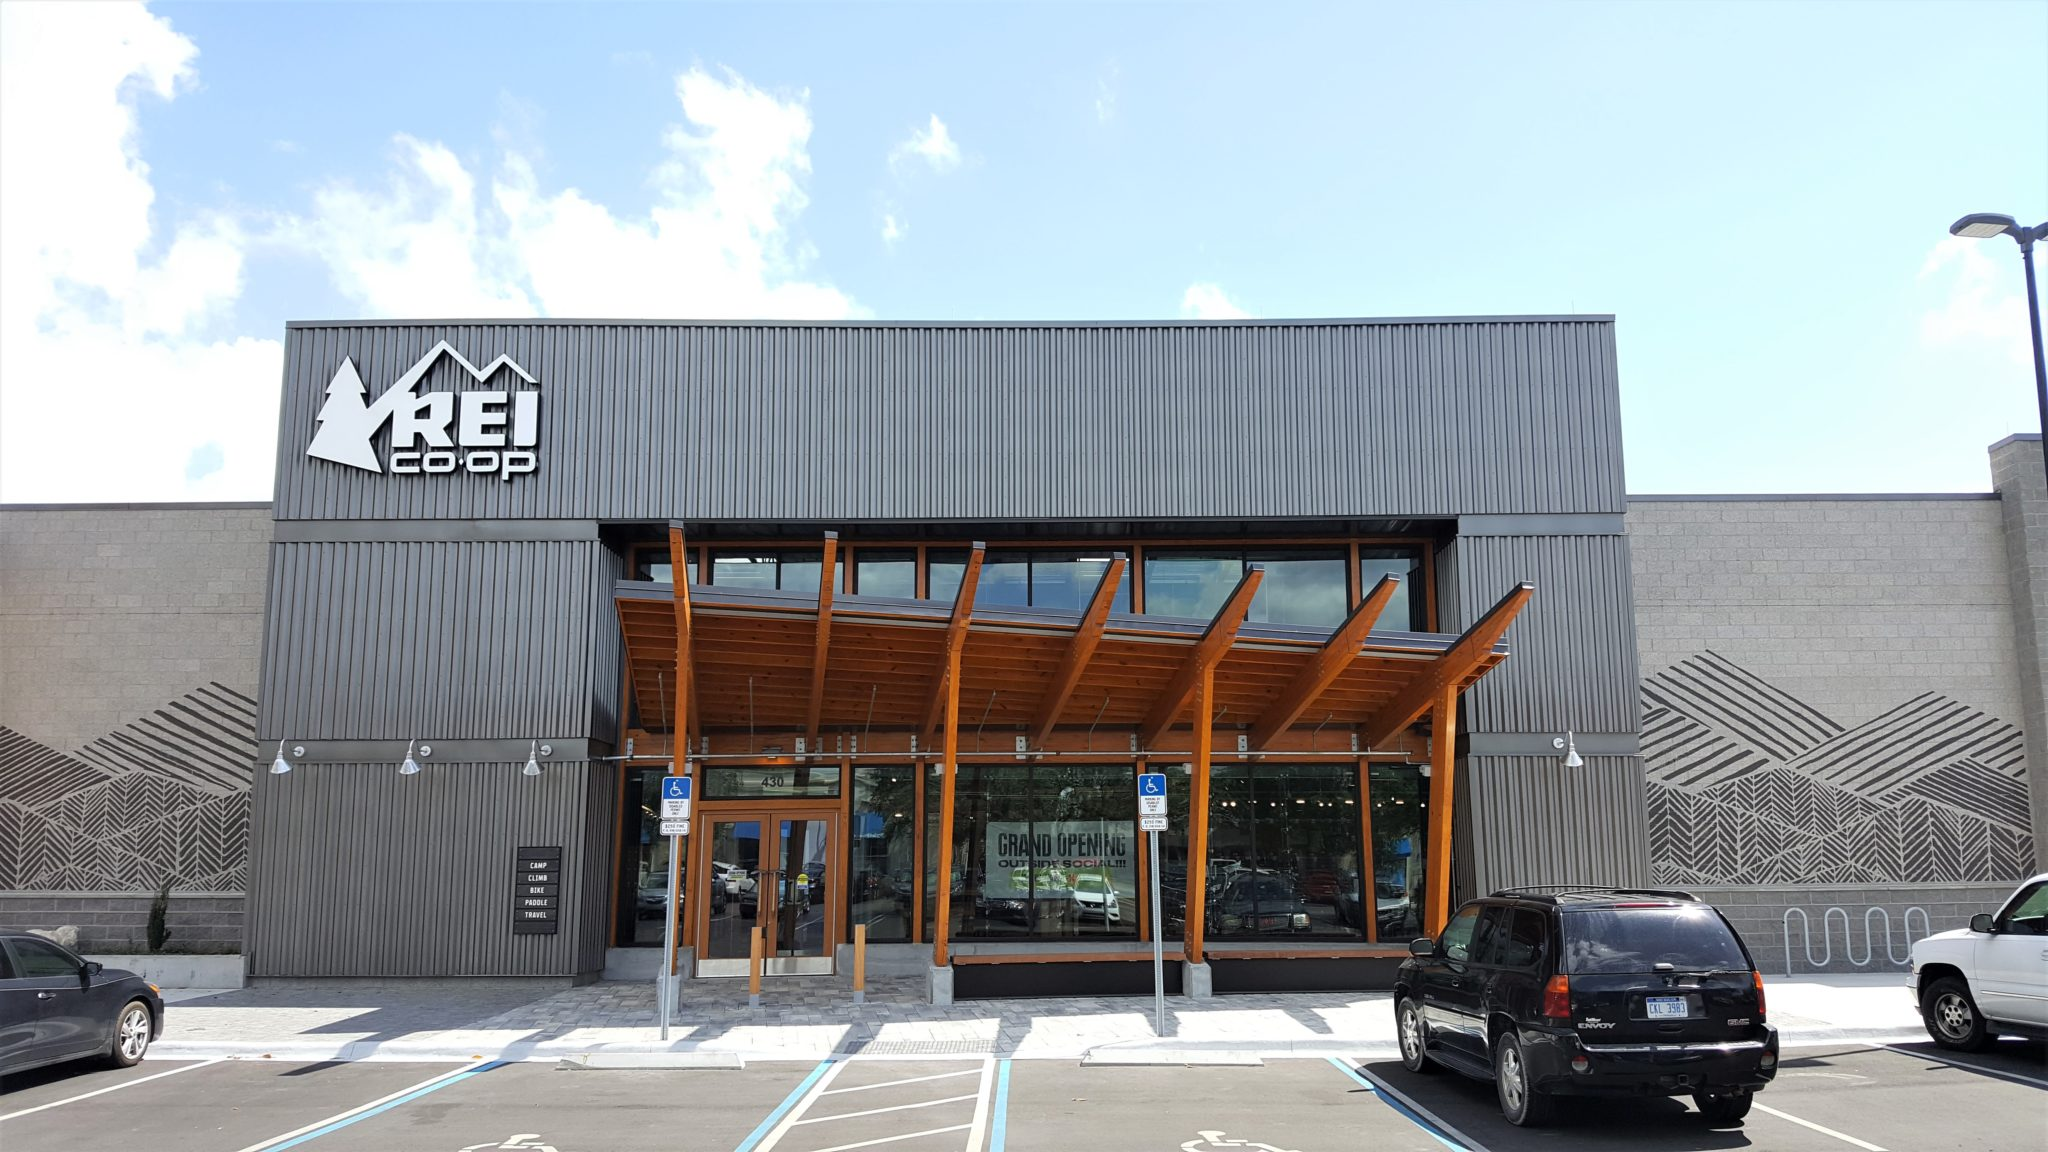 rei opening winter park location may 12 bungalower